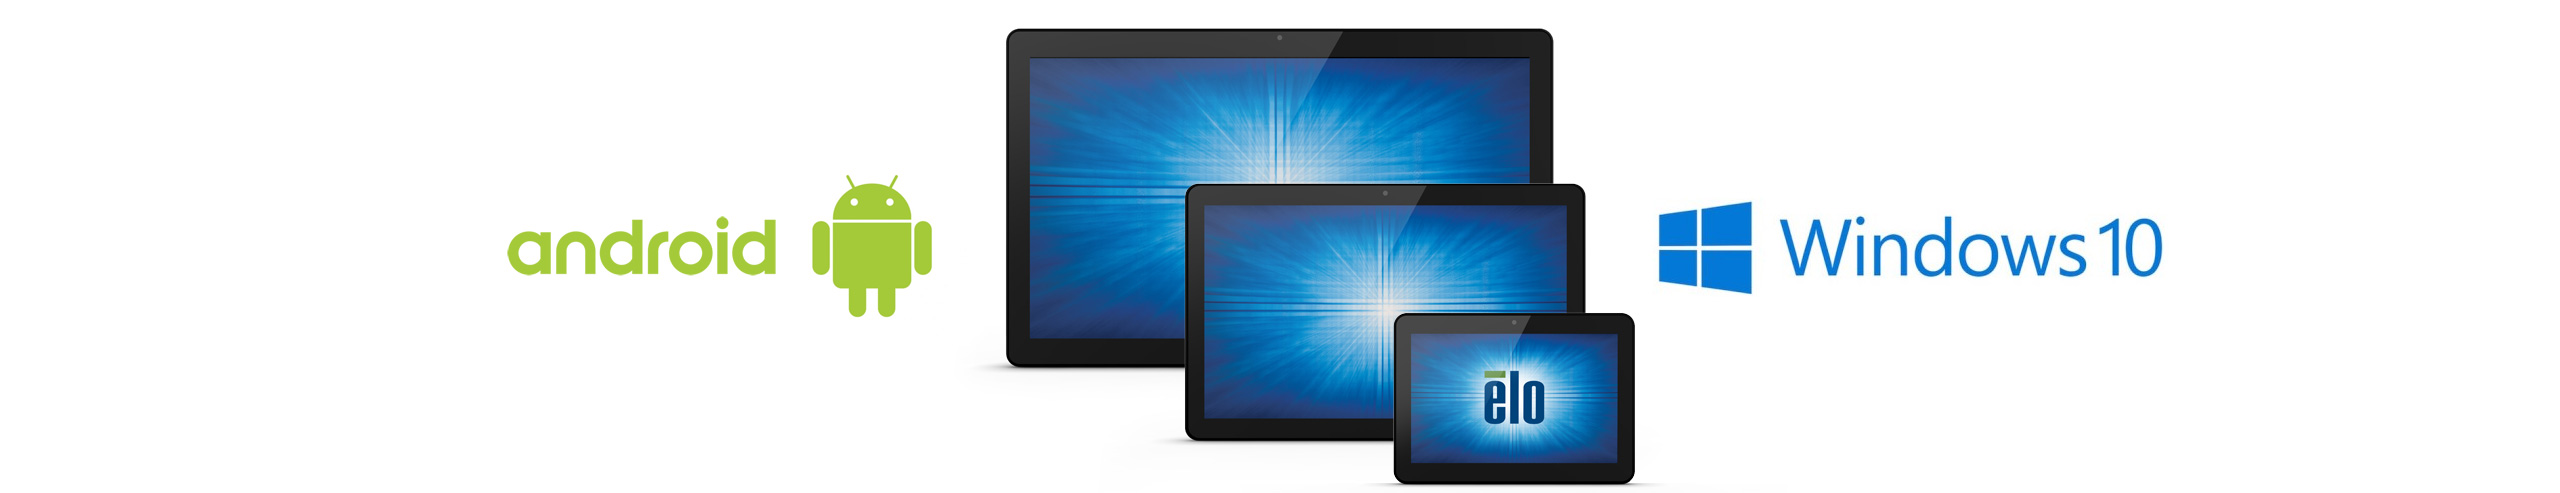 Elo I Serie Zubehoer Matrix Android Windows